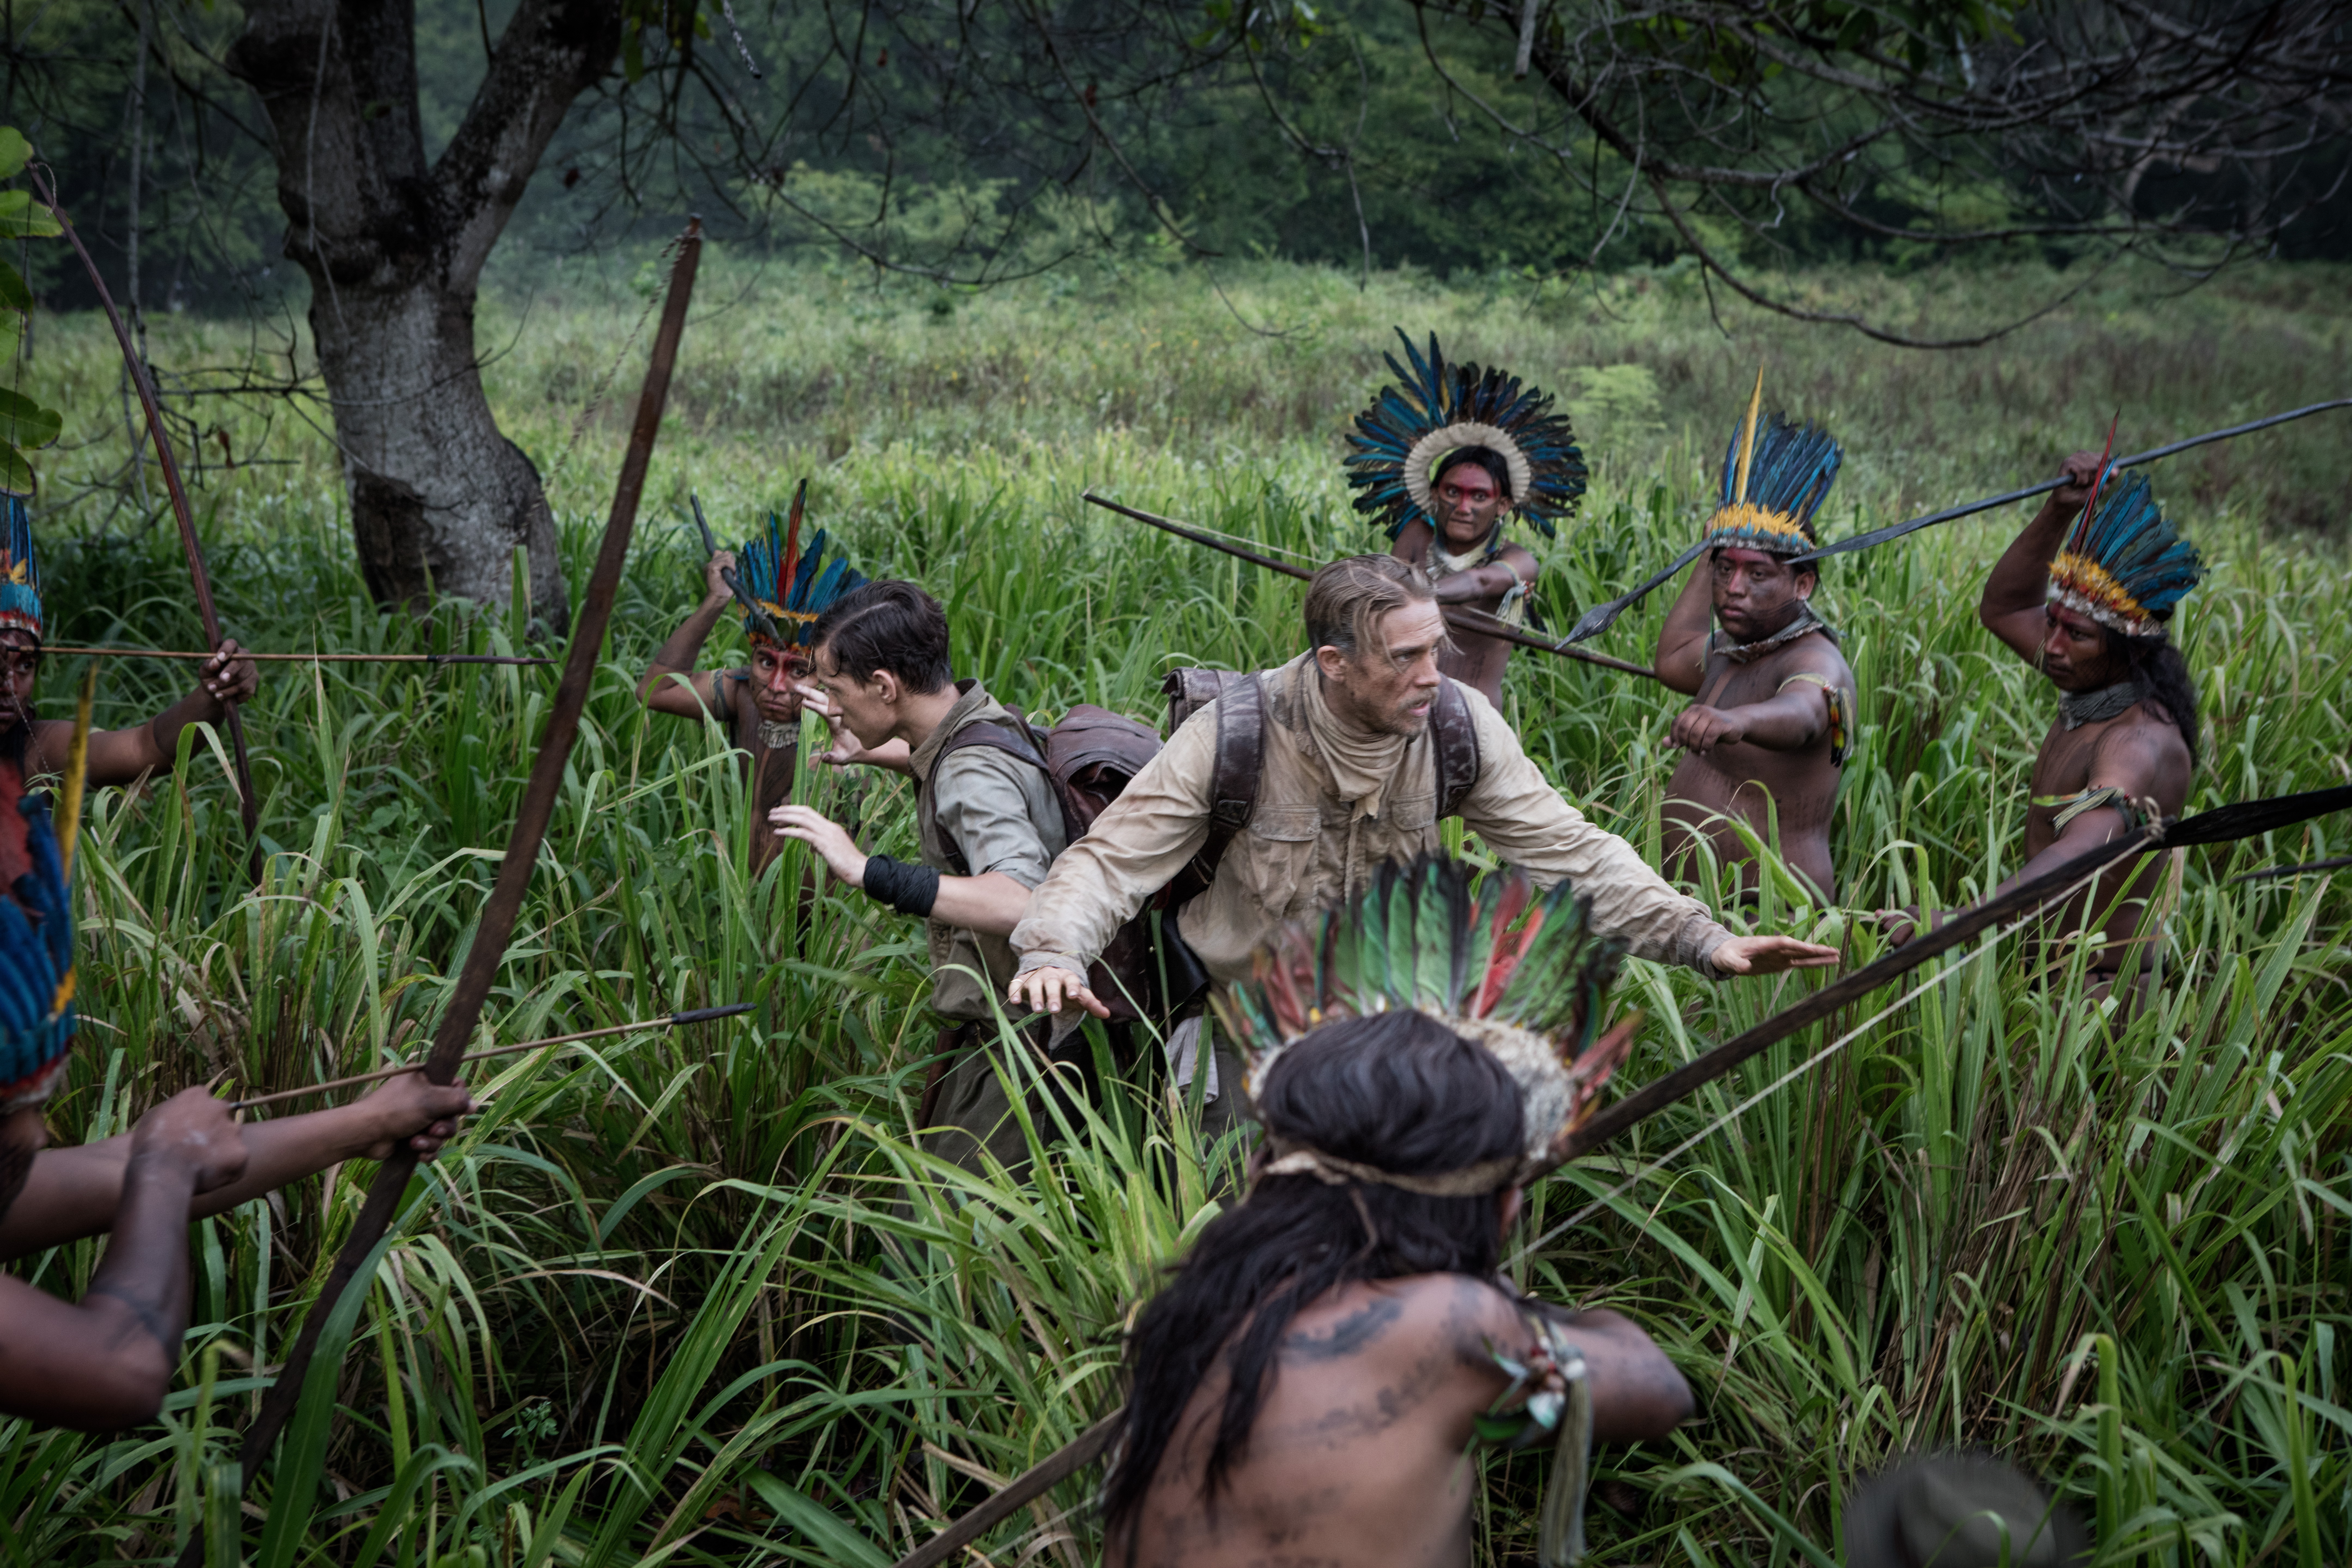 Charlie Hunnam and Tom Holland in The Lost City of Z (2016)